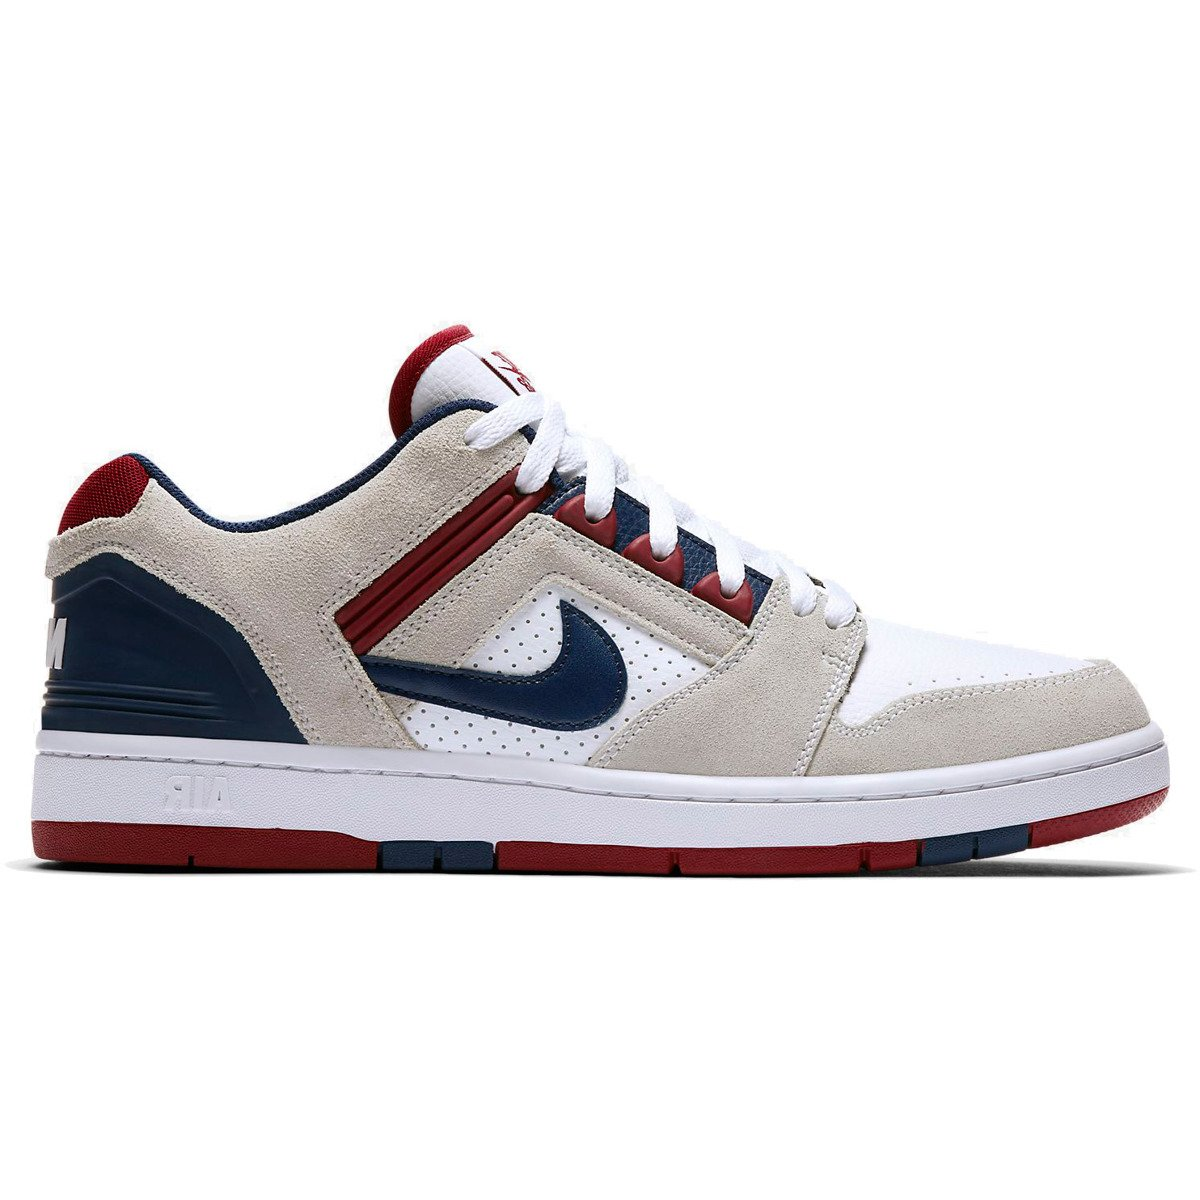 the best attitude 1a7a3 0d14d shoes Nike SB Air Force II Low BielRed CrushBielBlue Void white  Shoes   Nike SB Brands  Nike SB SALE  Sale - 40%  Shoes Buty  Nike SB  Nike  Summer ...